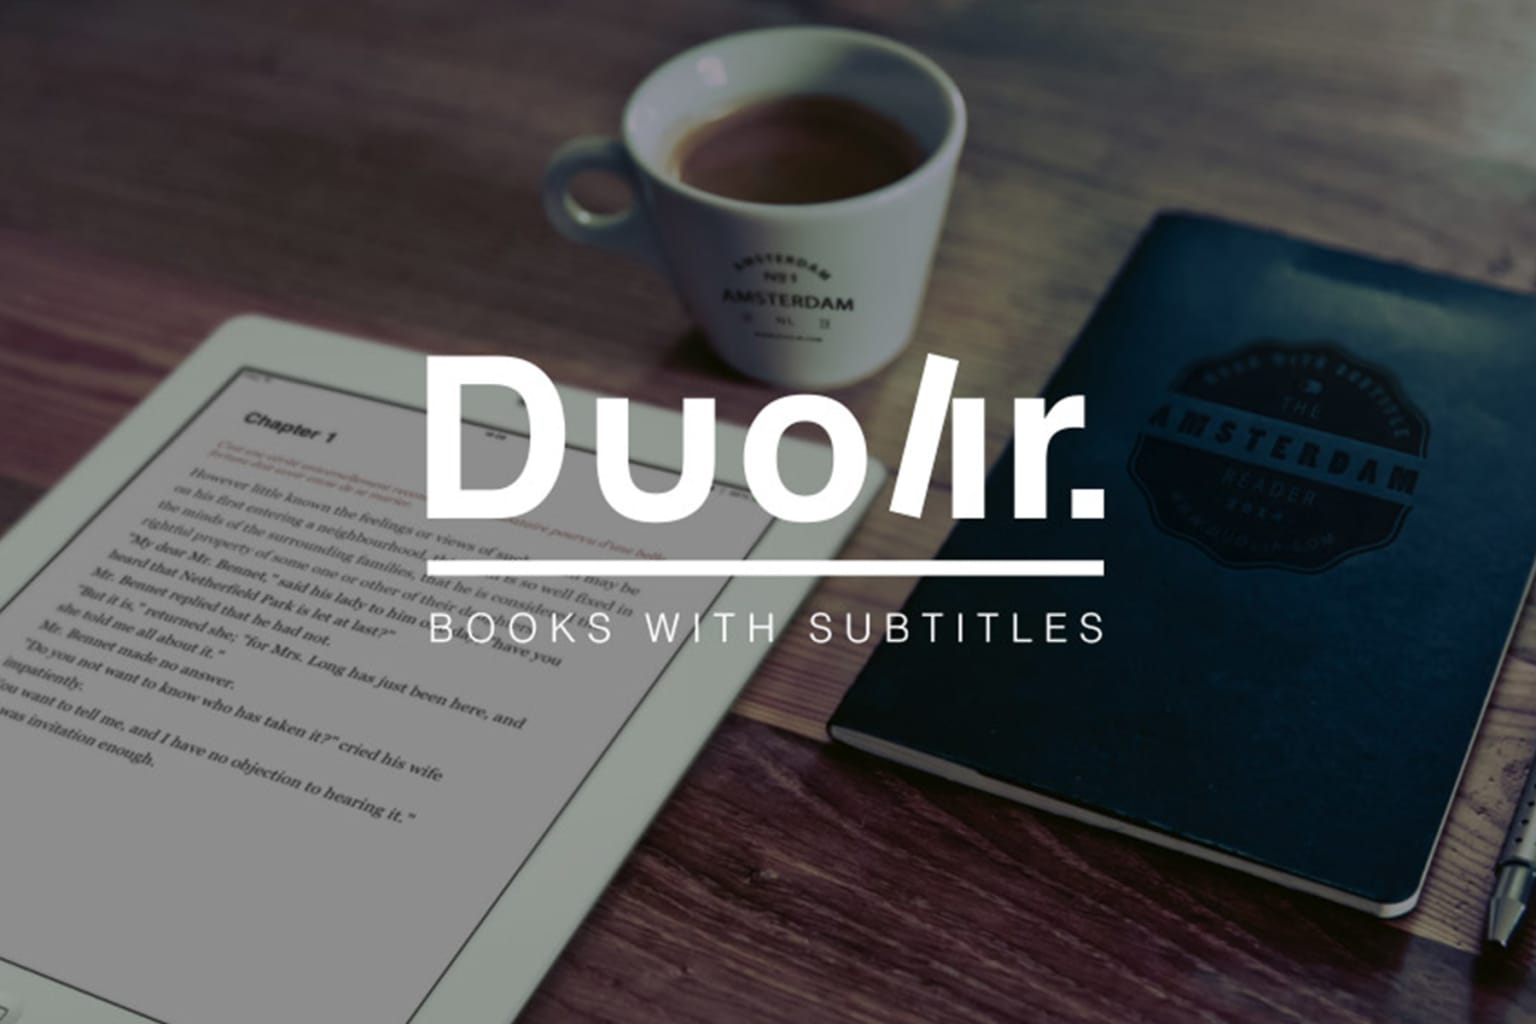 Duolir books with subtitles